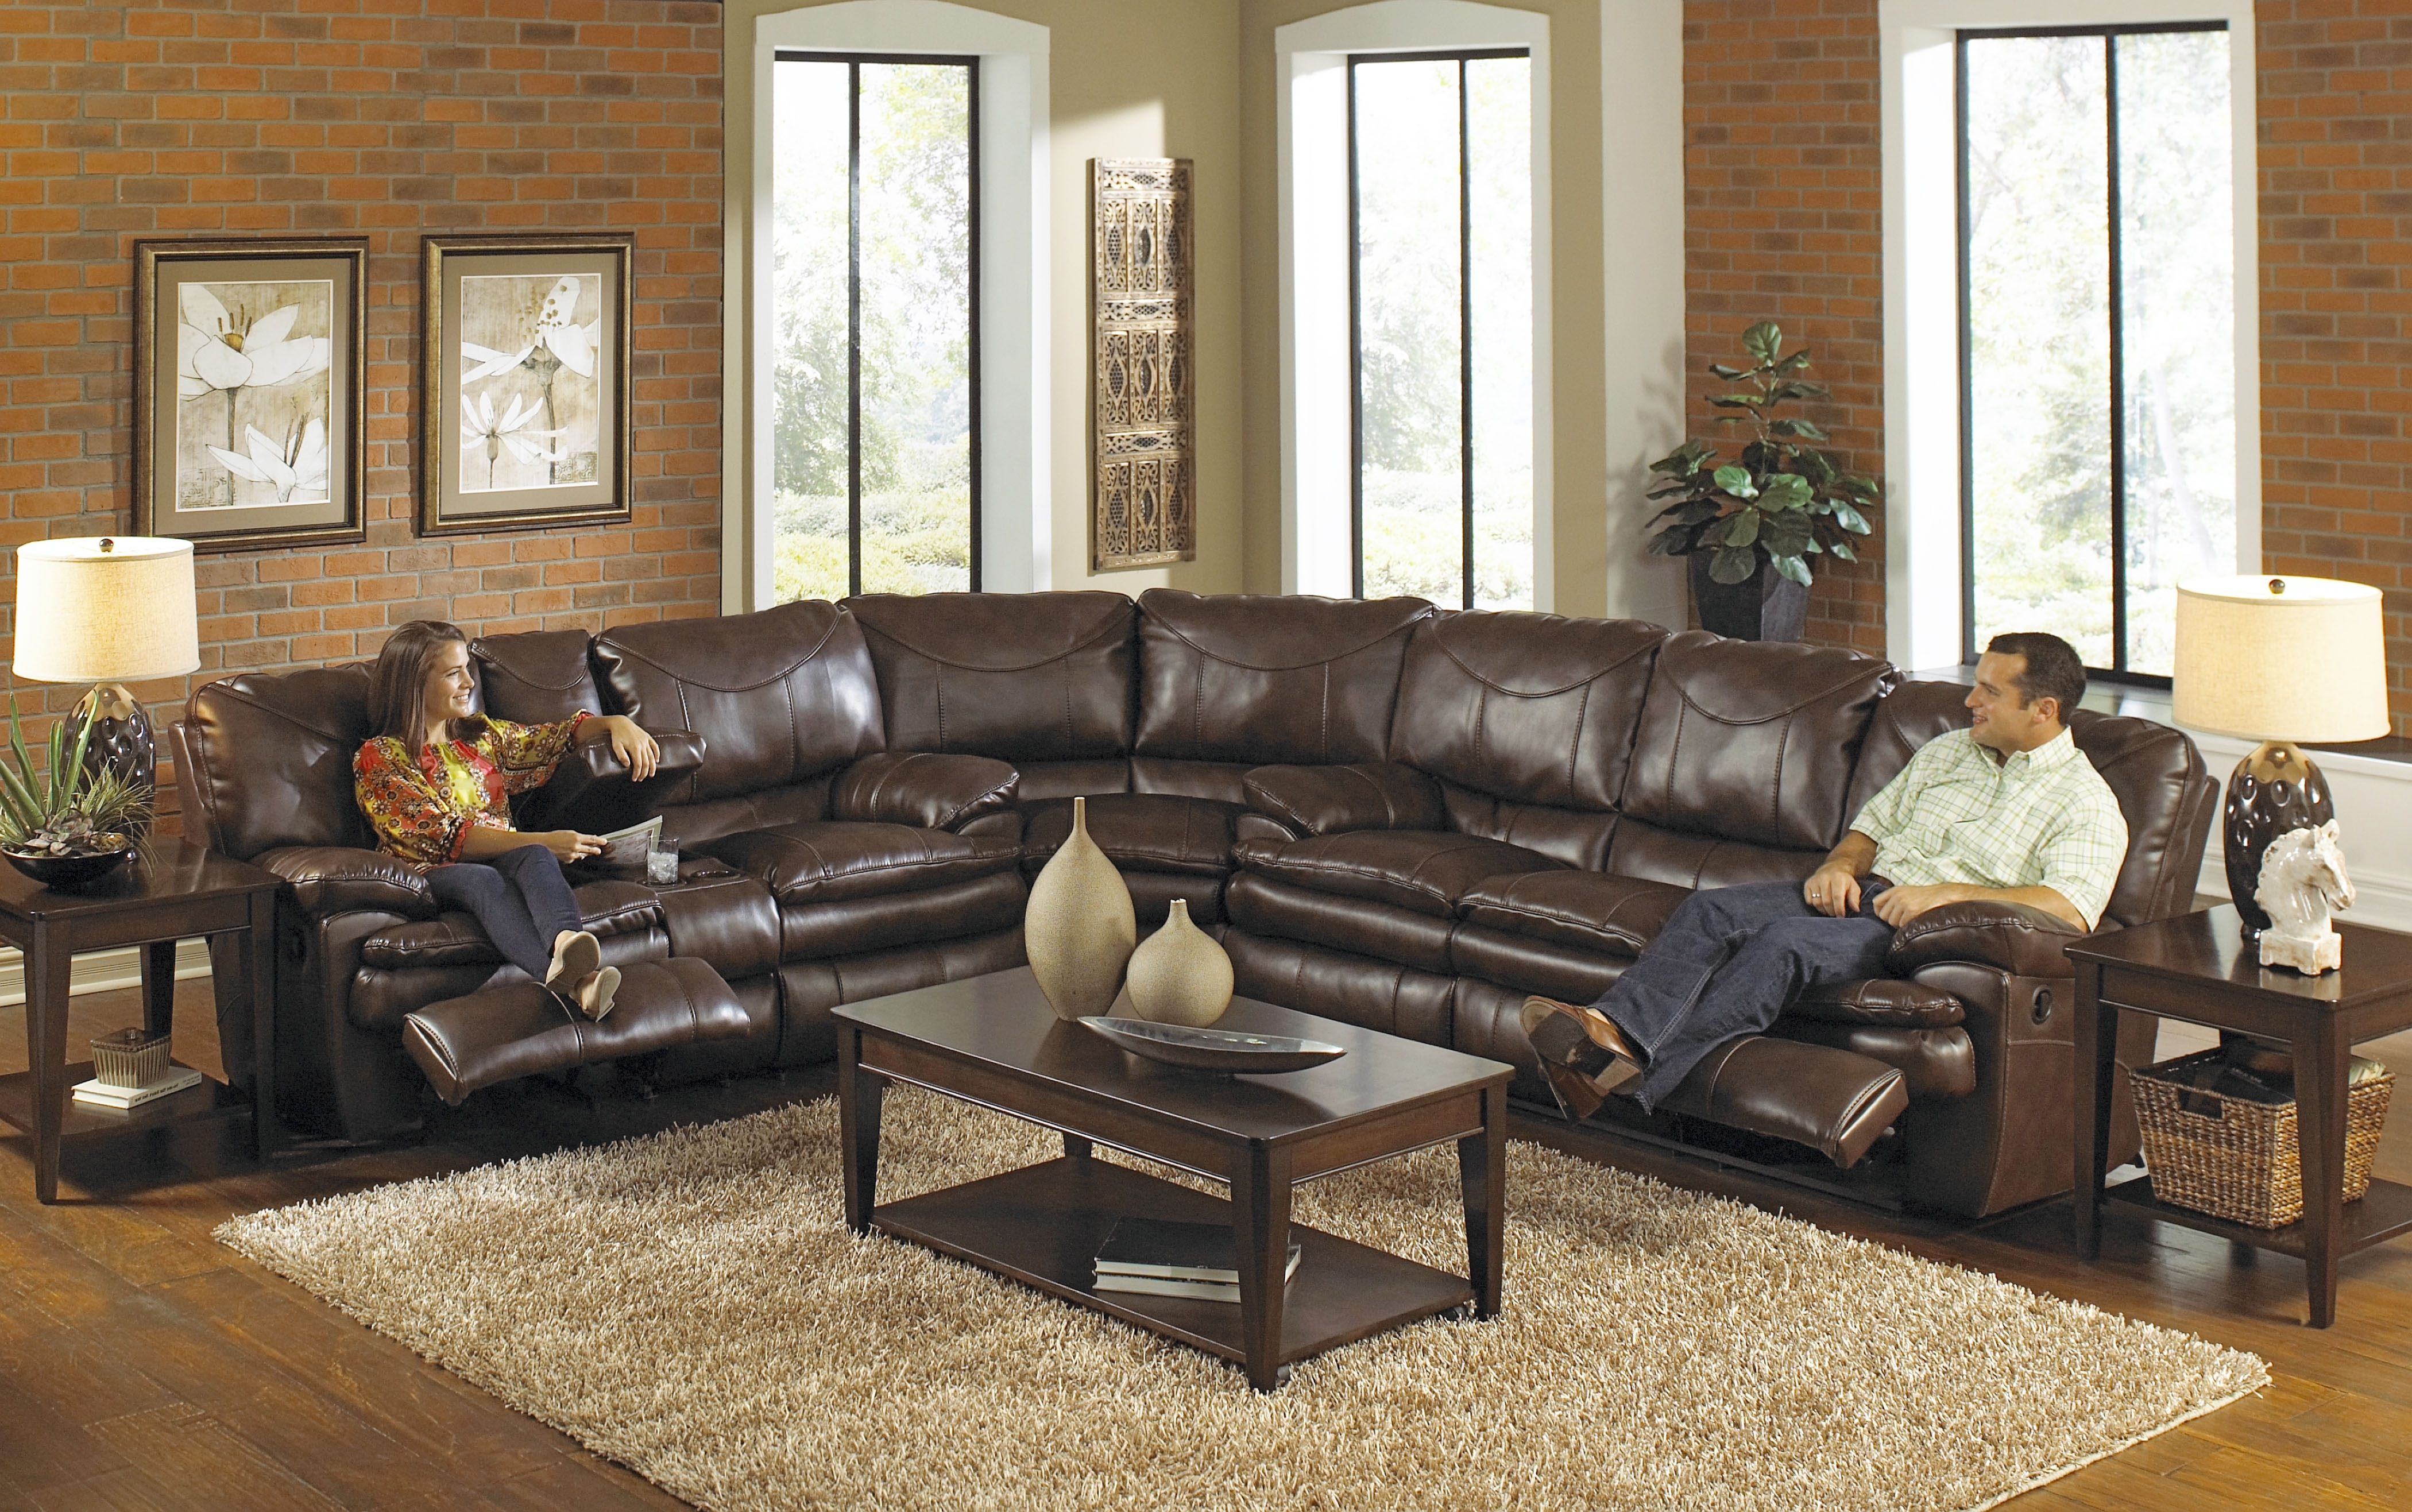 Sectional Sofas At Sam's Club Regarding Preferred Power Reclining Sectional Reviews Dak Durablend® 6 Piece Sectional (View 16 of 20)